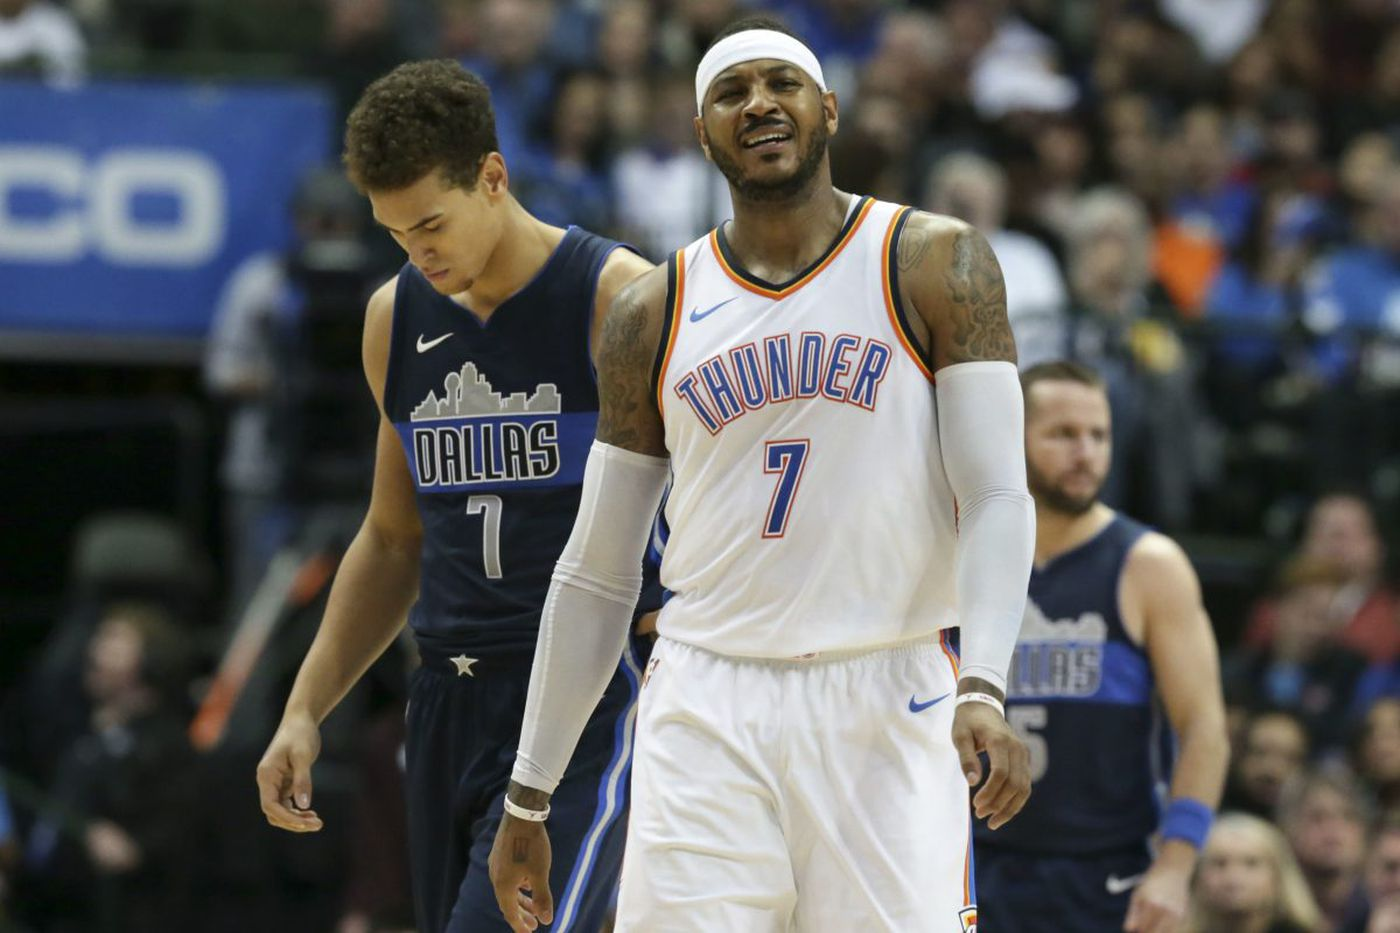 Sixers to face an Oklahoma City Thunder squad still adjusting to a super-team style